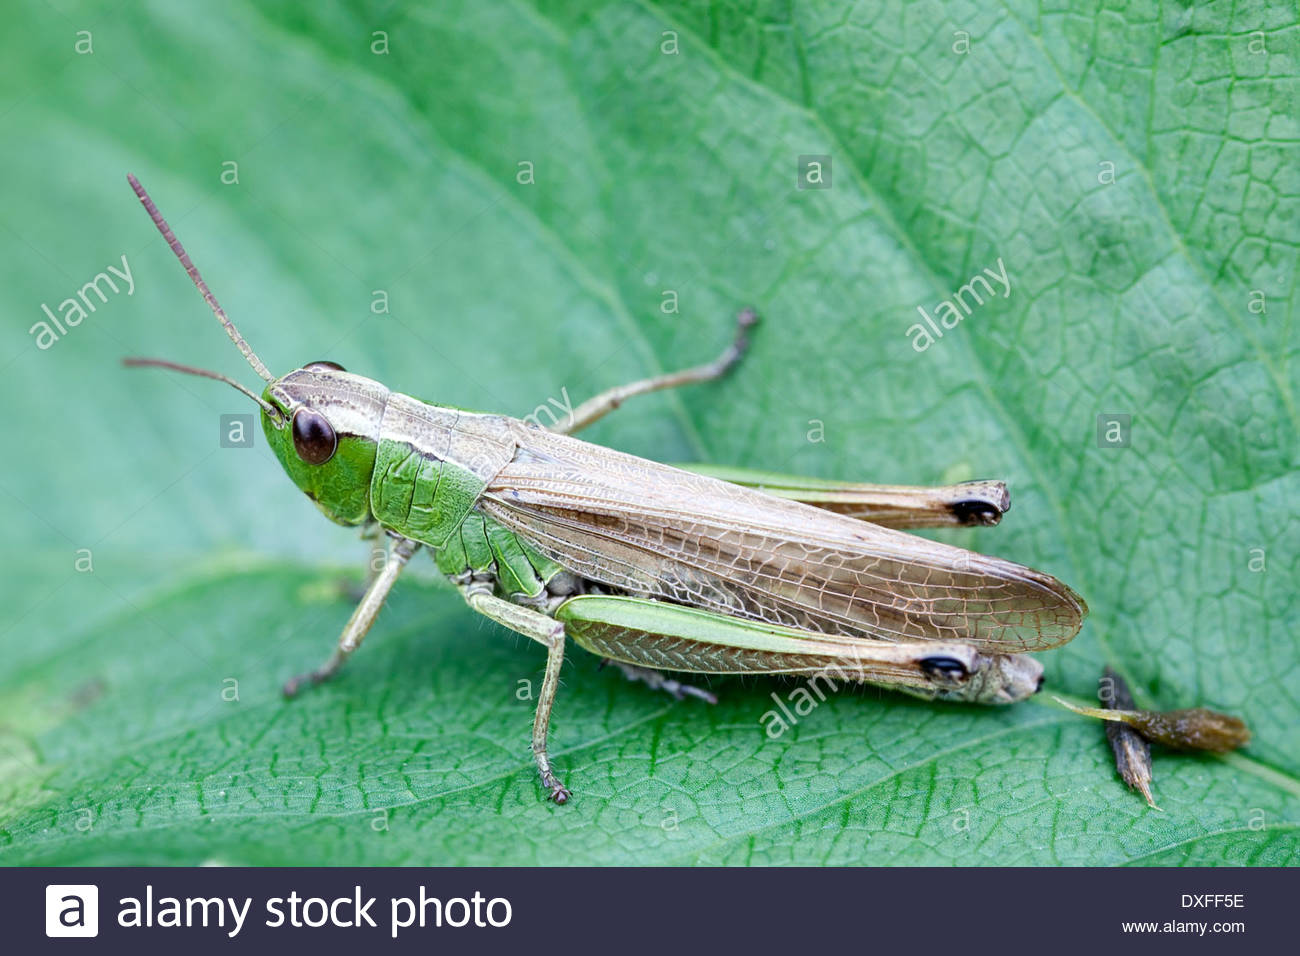 Grasshopper on a green leaf - Stock Image